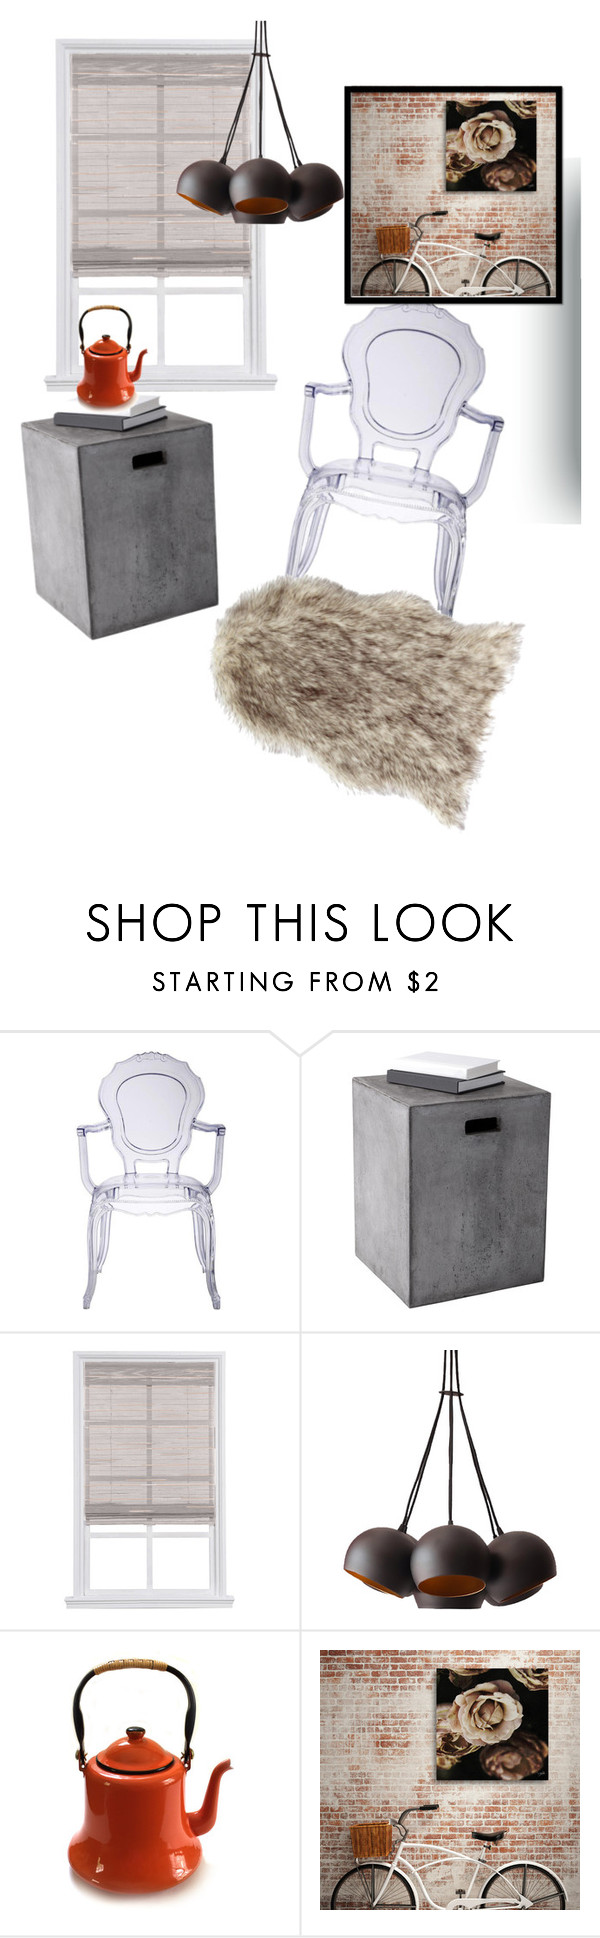 """""""Rummy 500"""" by sandra-st-germain-bengtson ❤ liked on Polyvore featuring interior, interiors, interior design, home, home decor, interior decorating, Sunpan, livingroom and under500"""